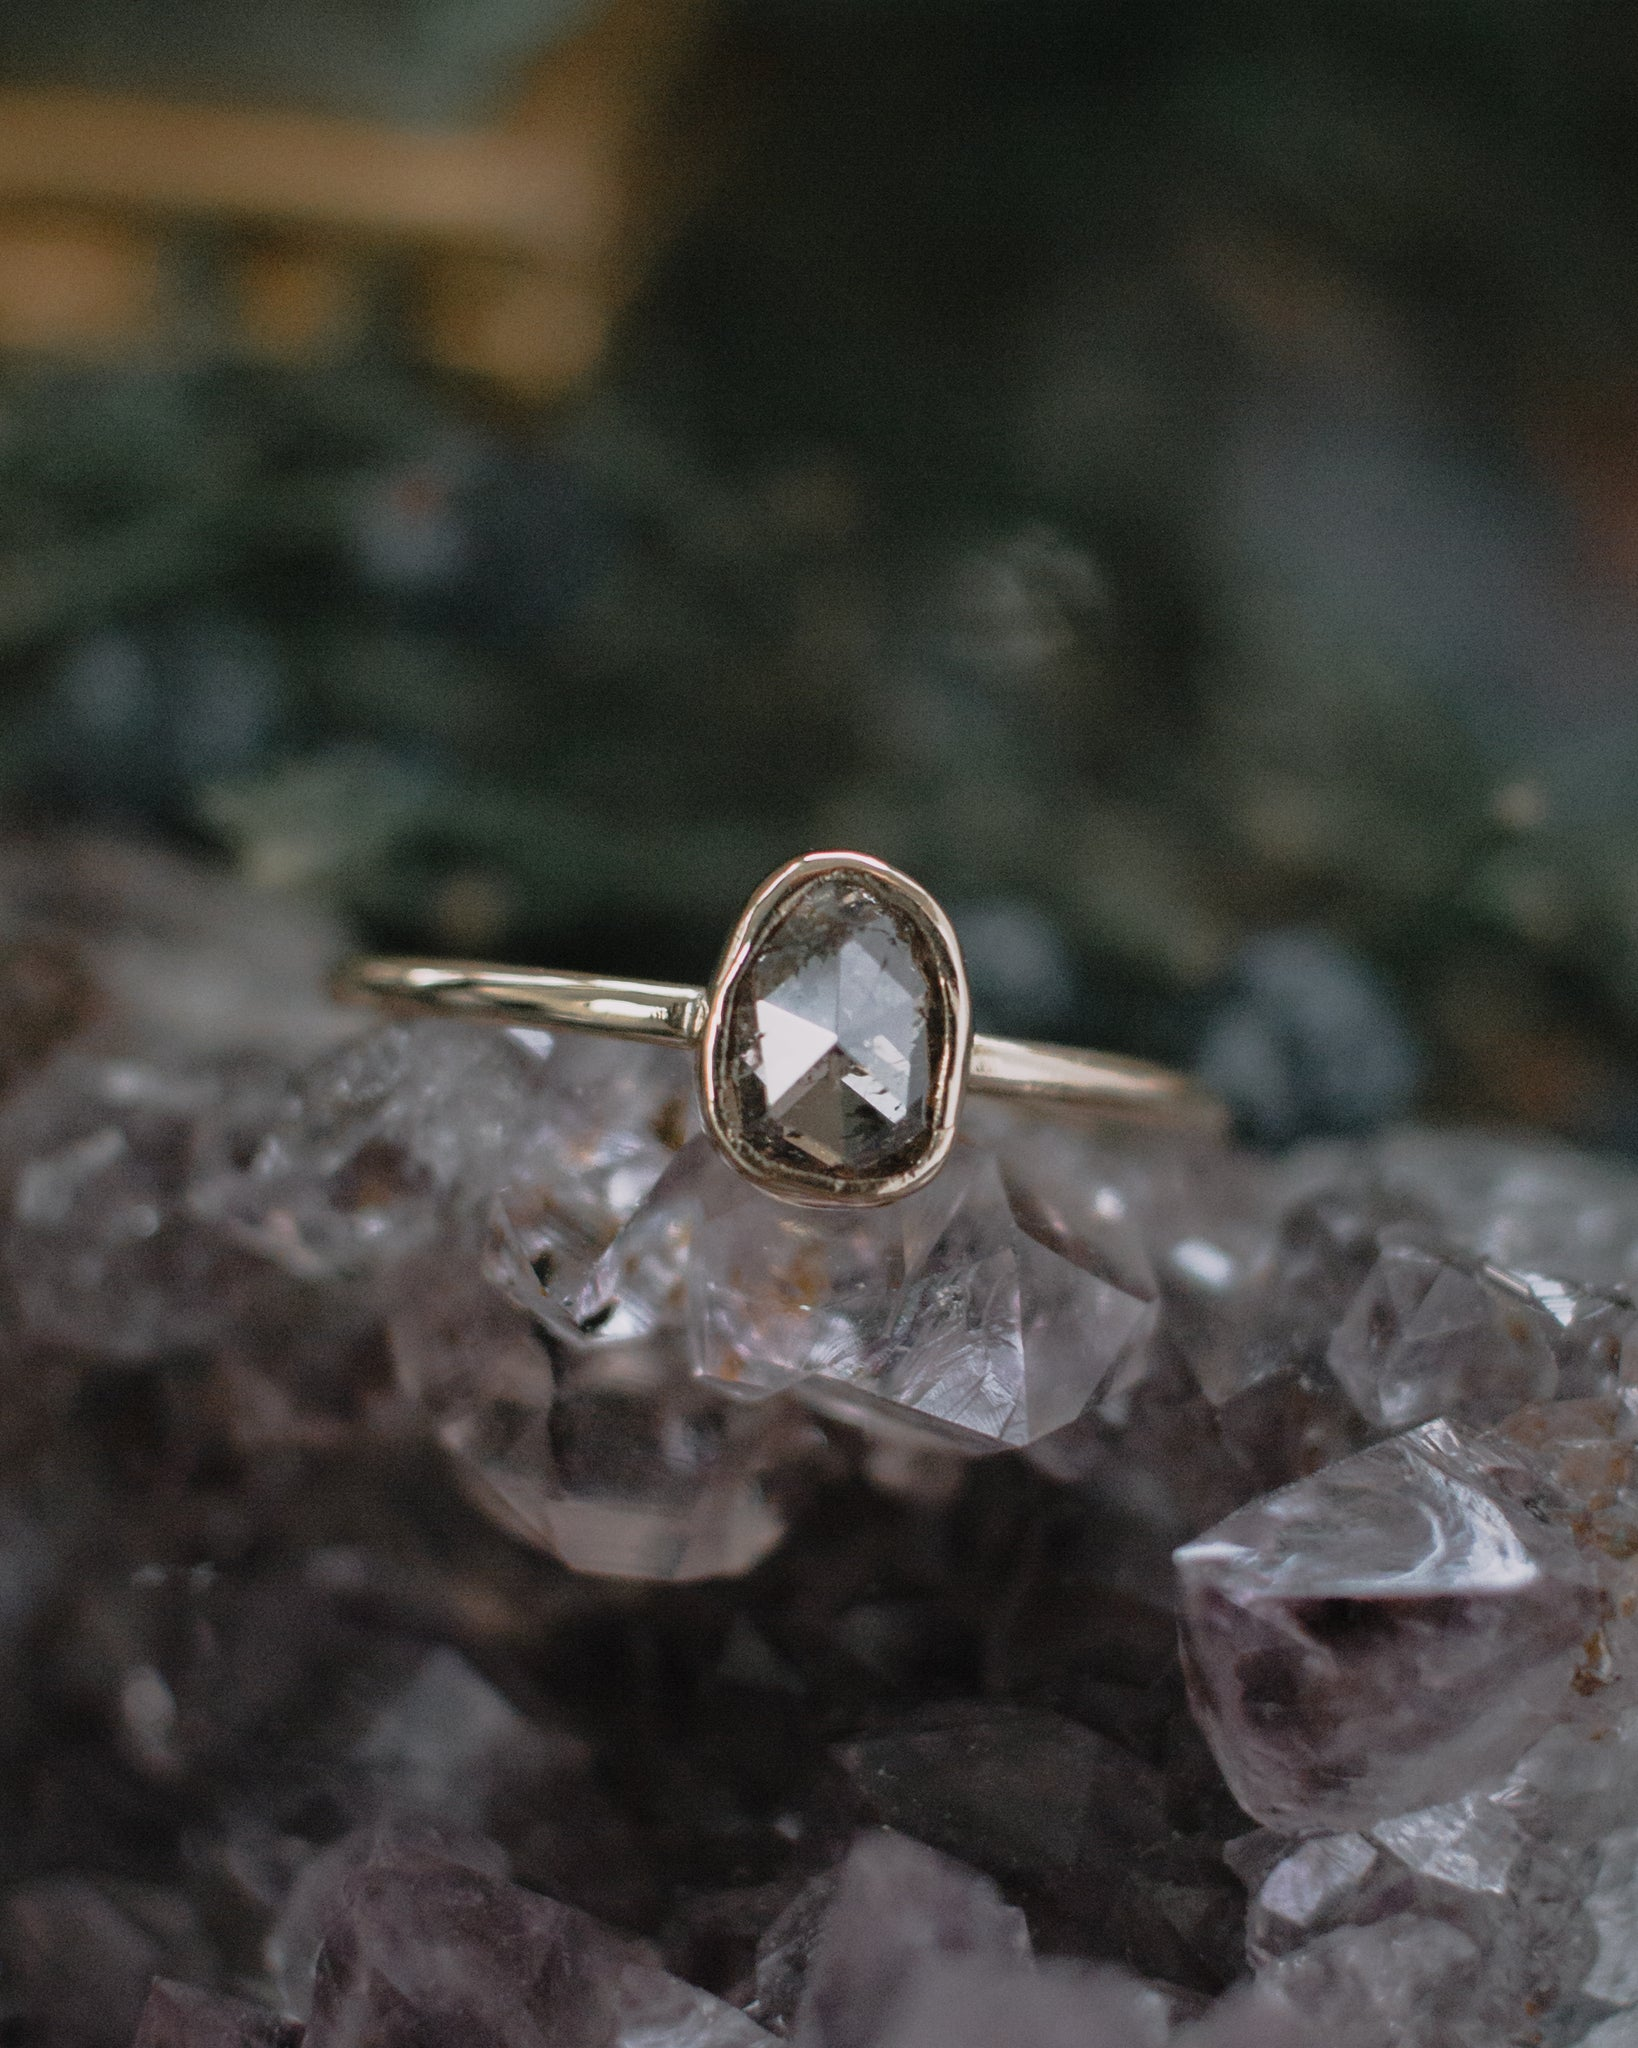 SOLD OUT - rose cut diamond slice ring with clean bezel